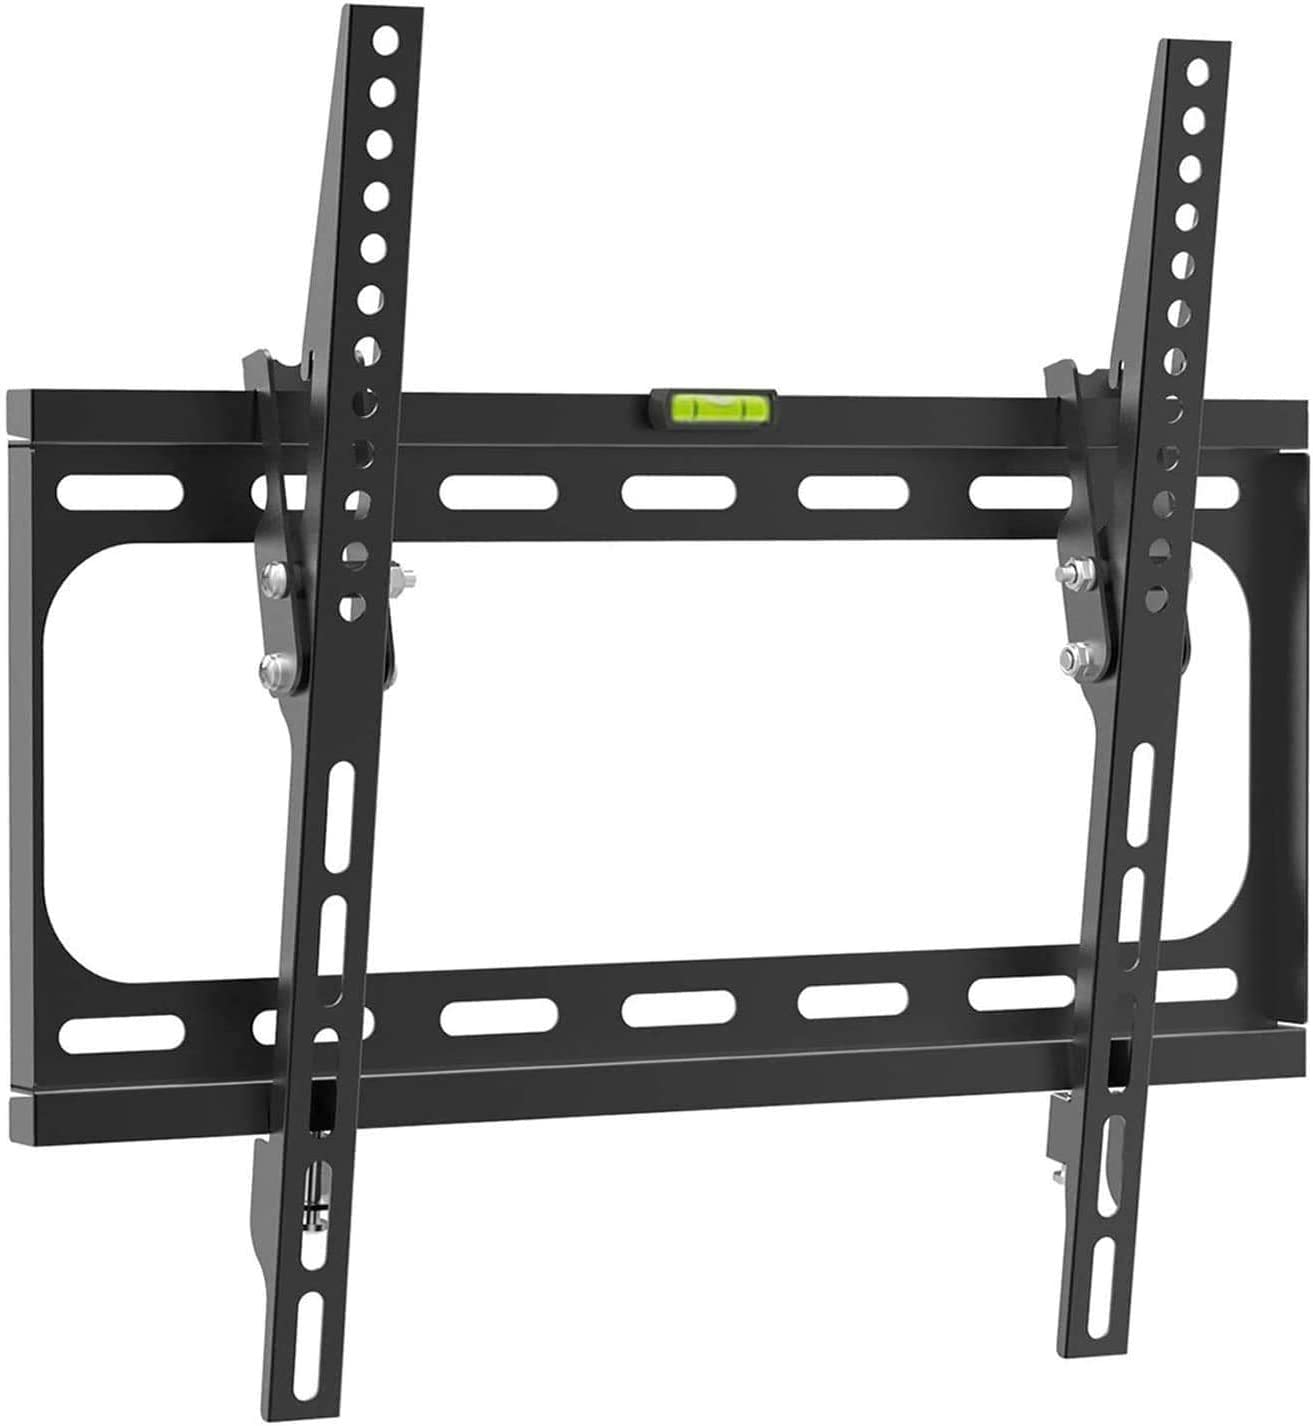 CHARMOUNT Tilting TV Manufacturer regenerated product Wall Mount 32-55 Univ 35% OFF inch Low Profile TVs